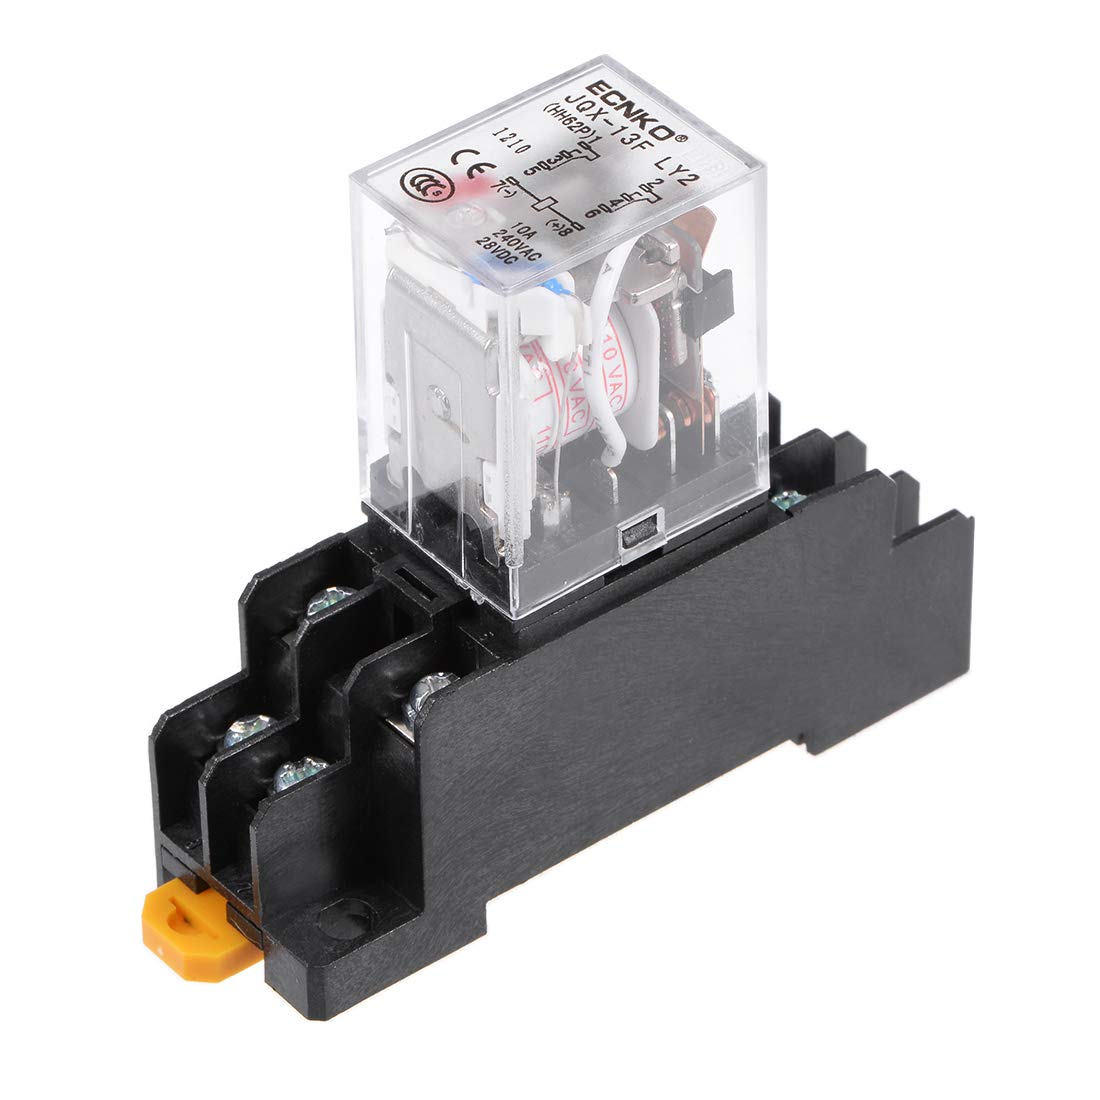 Best Rated In Solid State Relays Helpful Customer Reviews Electrical Relay Application Uxcell Jqx 13f Ac110v Coil Dpdt 8pins Red Light Electromagnetic Power Scoket Product